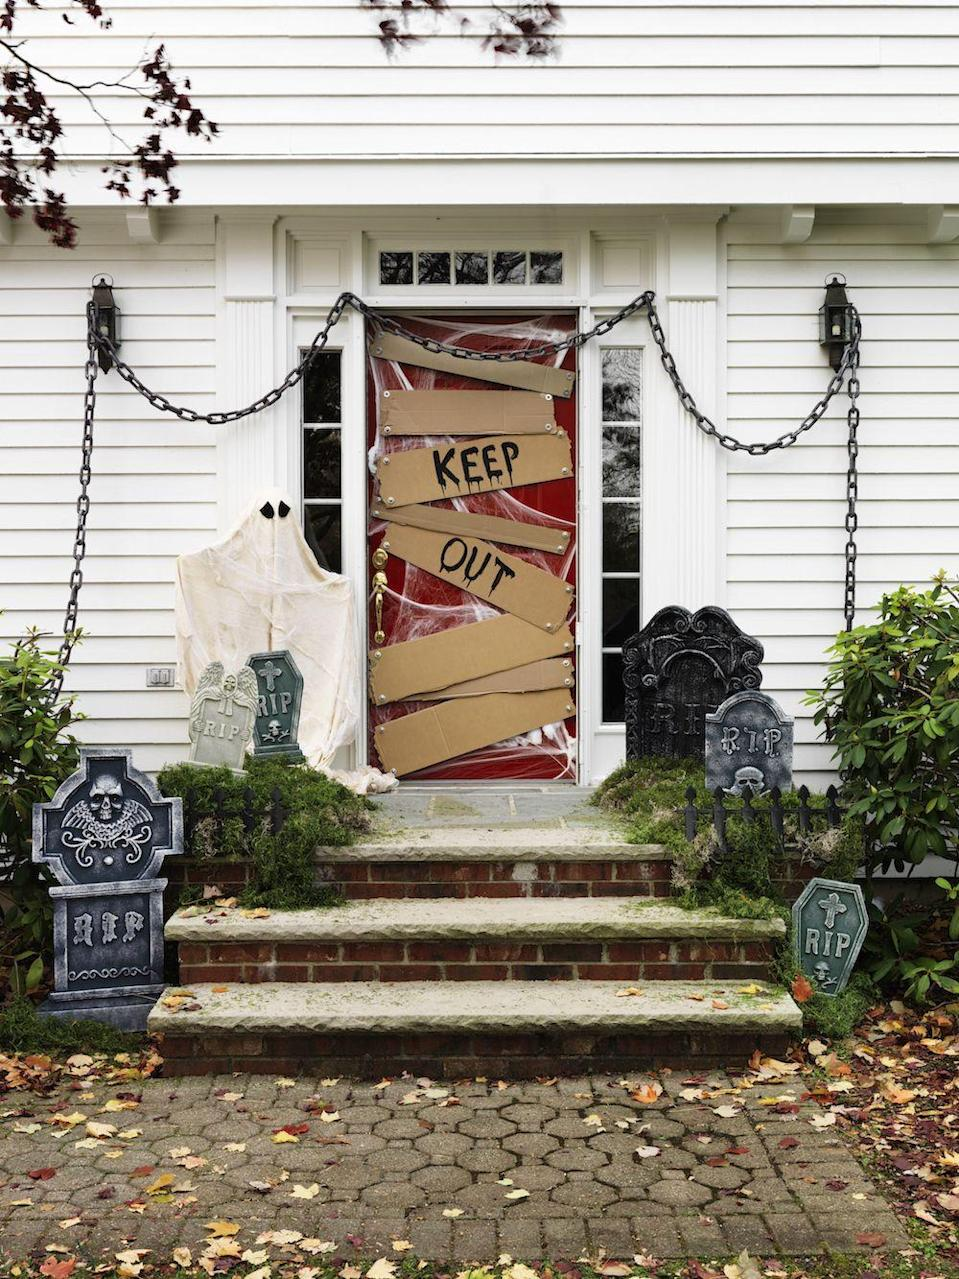 """<p>Turn your home's entrance into a graveyard—the perfect project for dedicated Halloween enthusiasts. Add a """"Keep Out"""" sign on cardboard slats, place cobwebs all over your door, hang a ghost, position a few gravestones on your steps, and you're ready to celebrate. </p><p><a class=""""link rapid-noclick-resp"""" href=""""https://www.amazon.com/YazyCraft-Webbing-Halloween-Decorations-Spiderweb/dp/B00F9RWP98?tag=syn-yahoo-20&ascsubtag=%5Bartid%7C10055.g.32948621%5Bsrc%7Cyahoo-us"""" rel=""""nofollow noopener"""" target=""""_blank"""" data-ylk=""""slk:SHOP COBWEBS"""">SHOP COBWEBS</a><br><br><em><a href=""""https://www.countryliving.com/diy-crafts/g22350299/halloween-door-decorations/?slide=17"""" rel=""""nofollow noopener"""" target=""""_blank"""" data-ylk=""""slk:See the full tutorial here >>"""" class=""""link rapid-noclick-resp"""">See the full tutorial here >></a></em> </p>"""